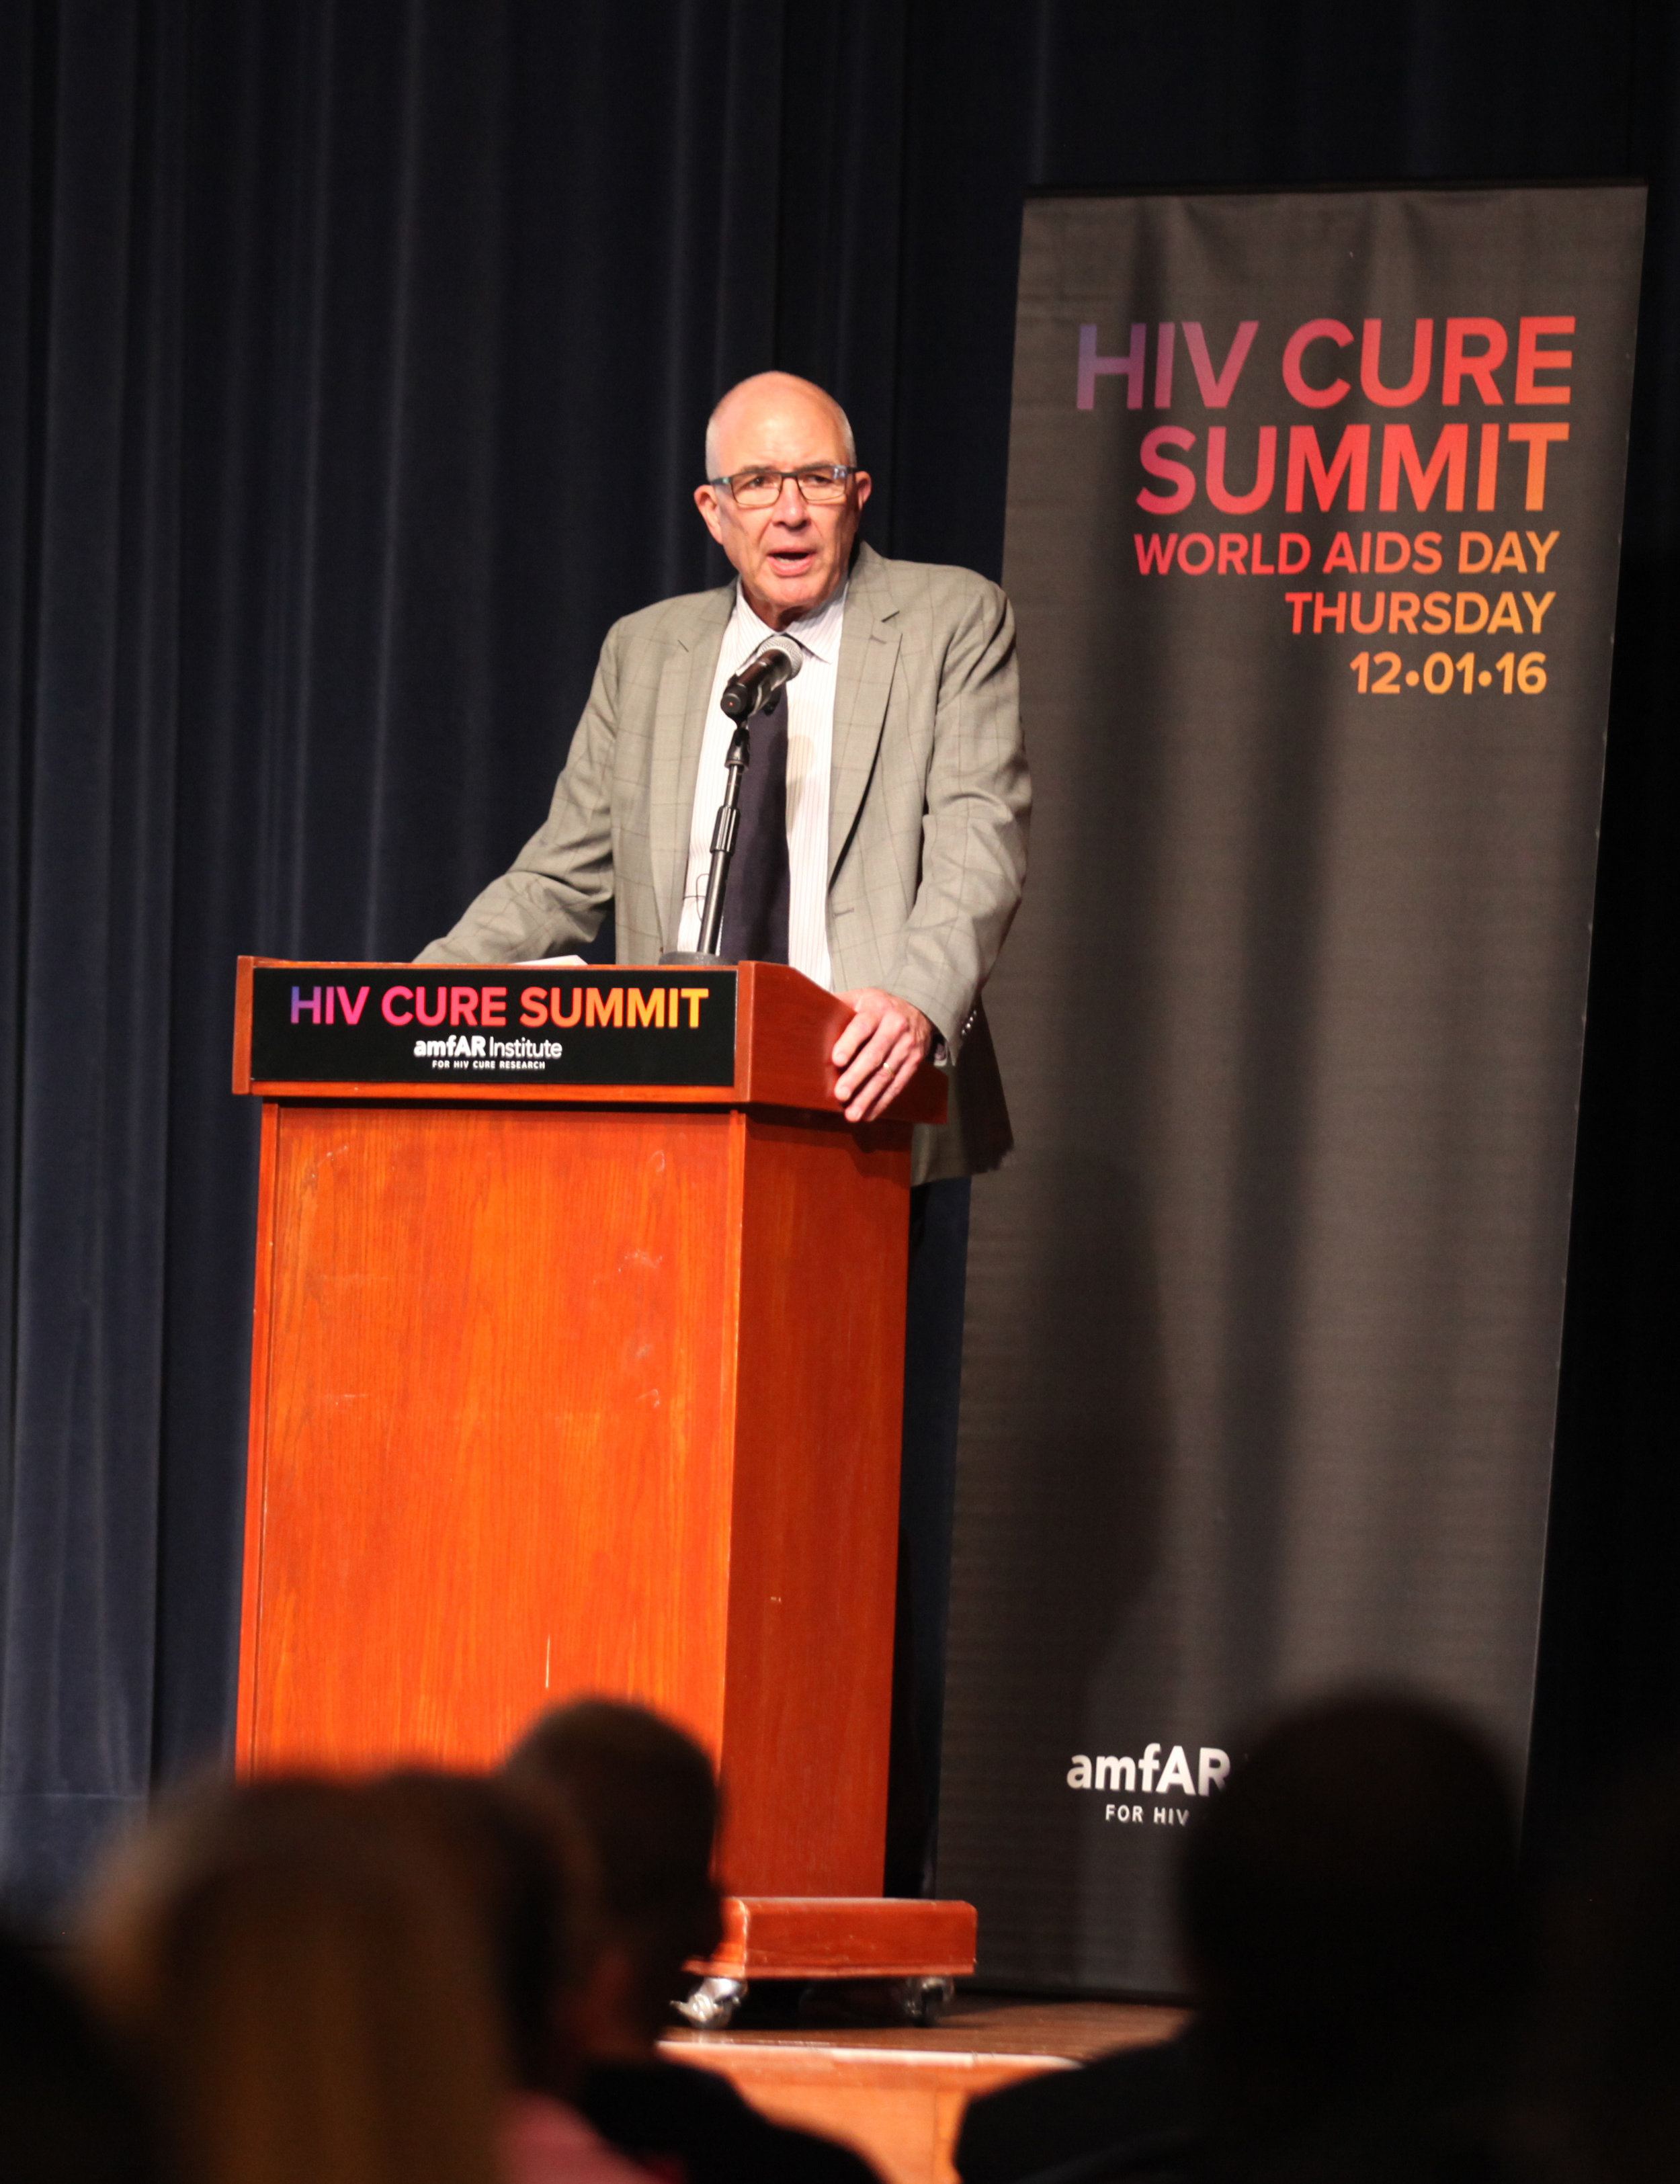 Dr. Paul Volberding, director of the amfAR Institute for HIV Cure Research